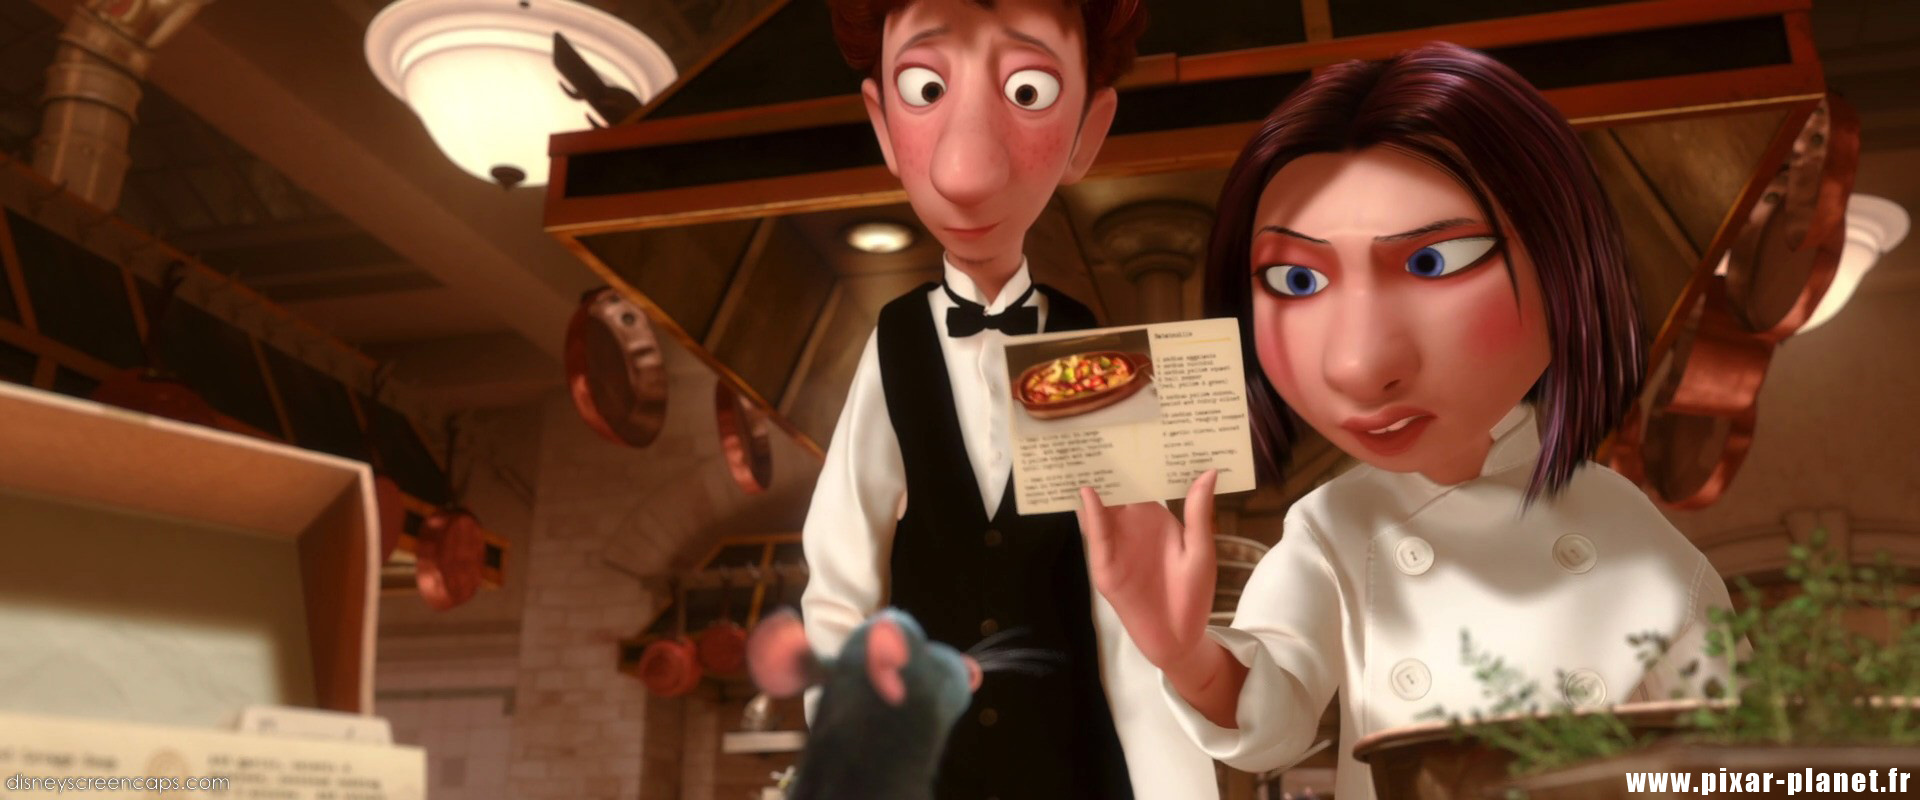 Pixar Planet Disney ratatouille